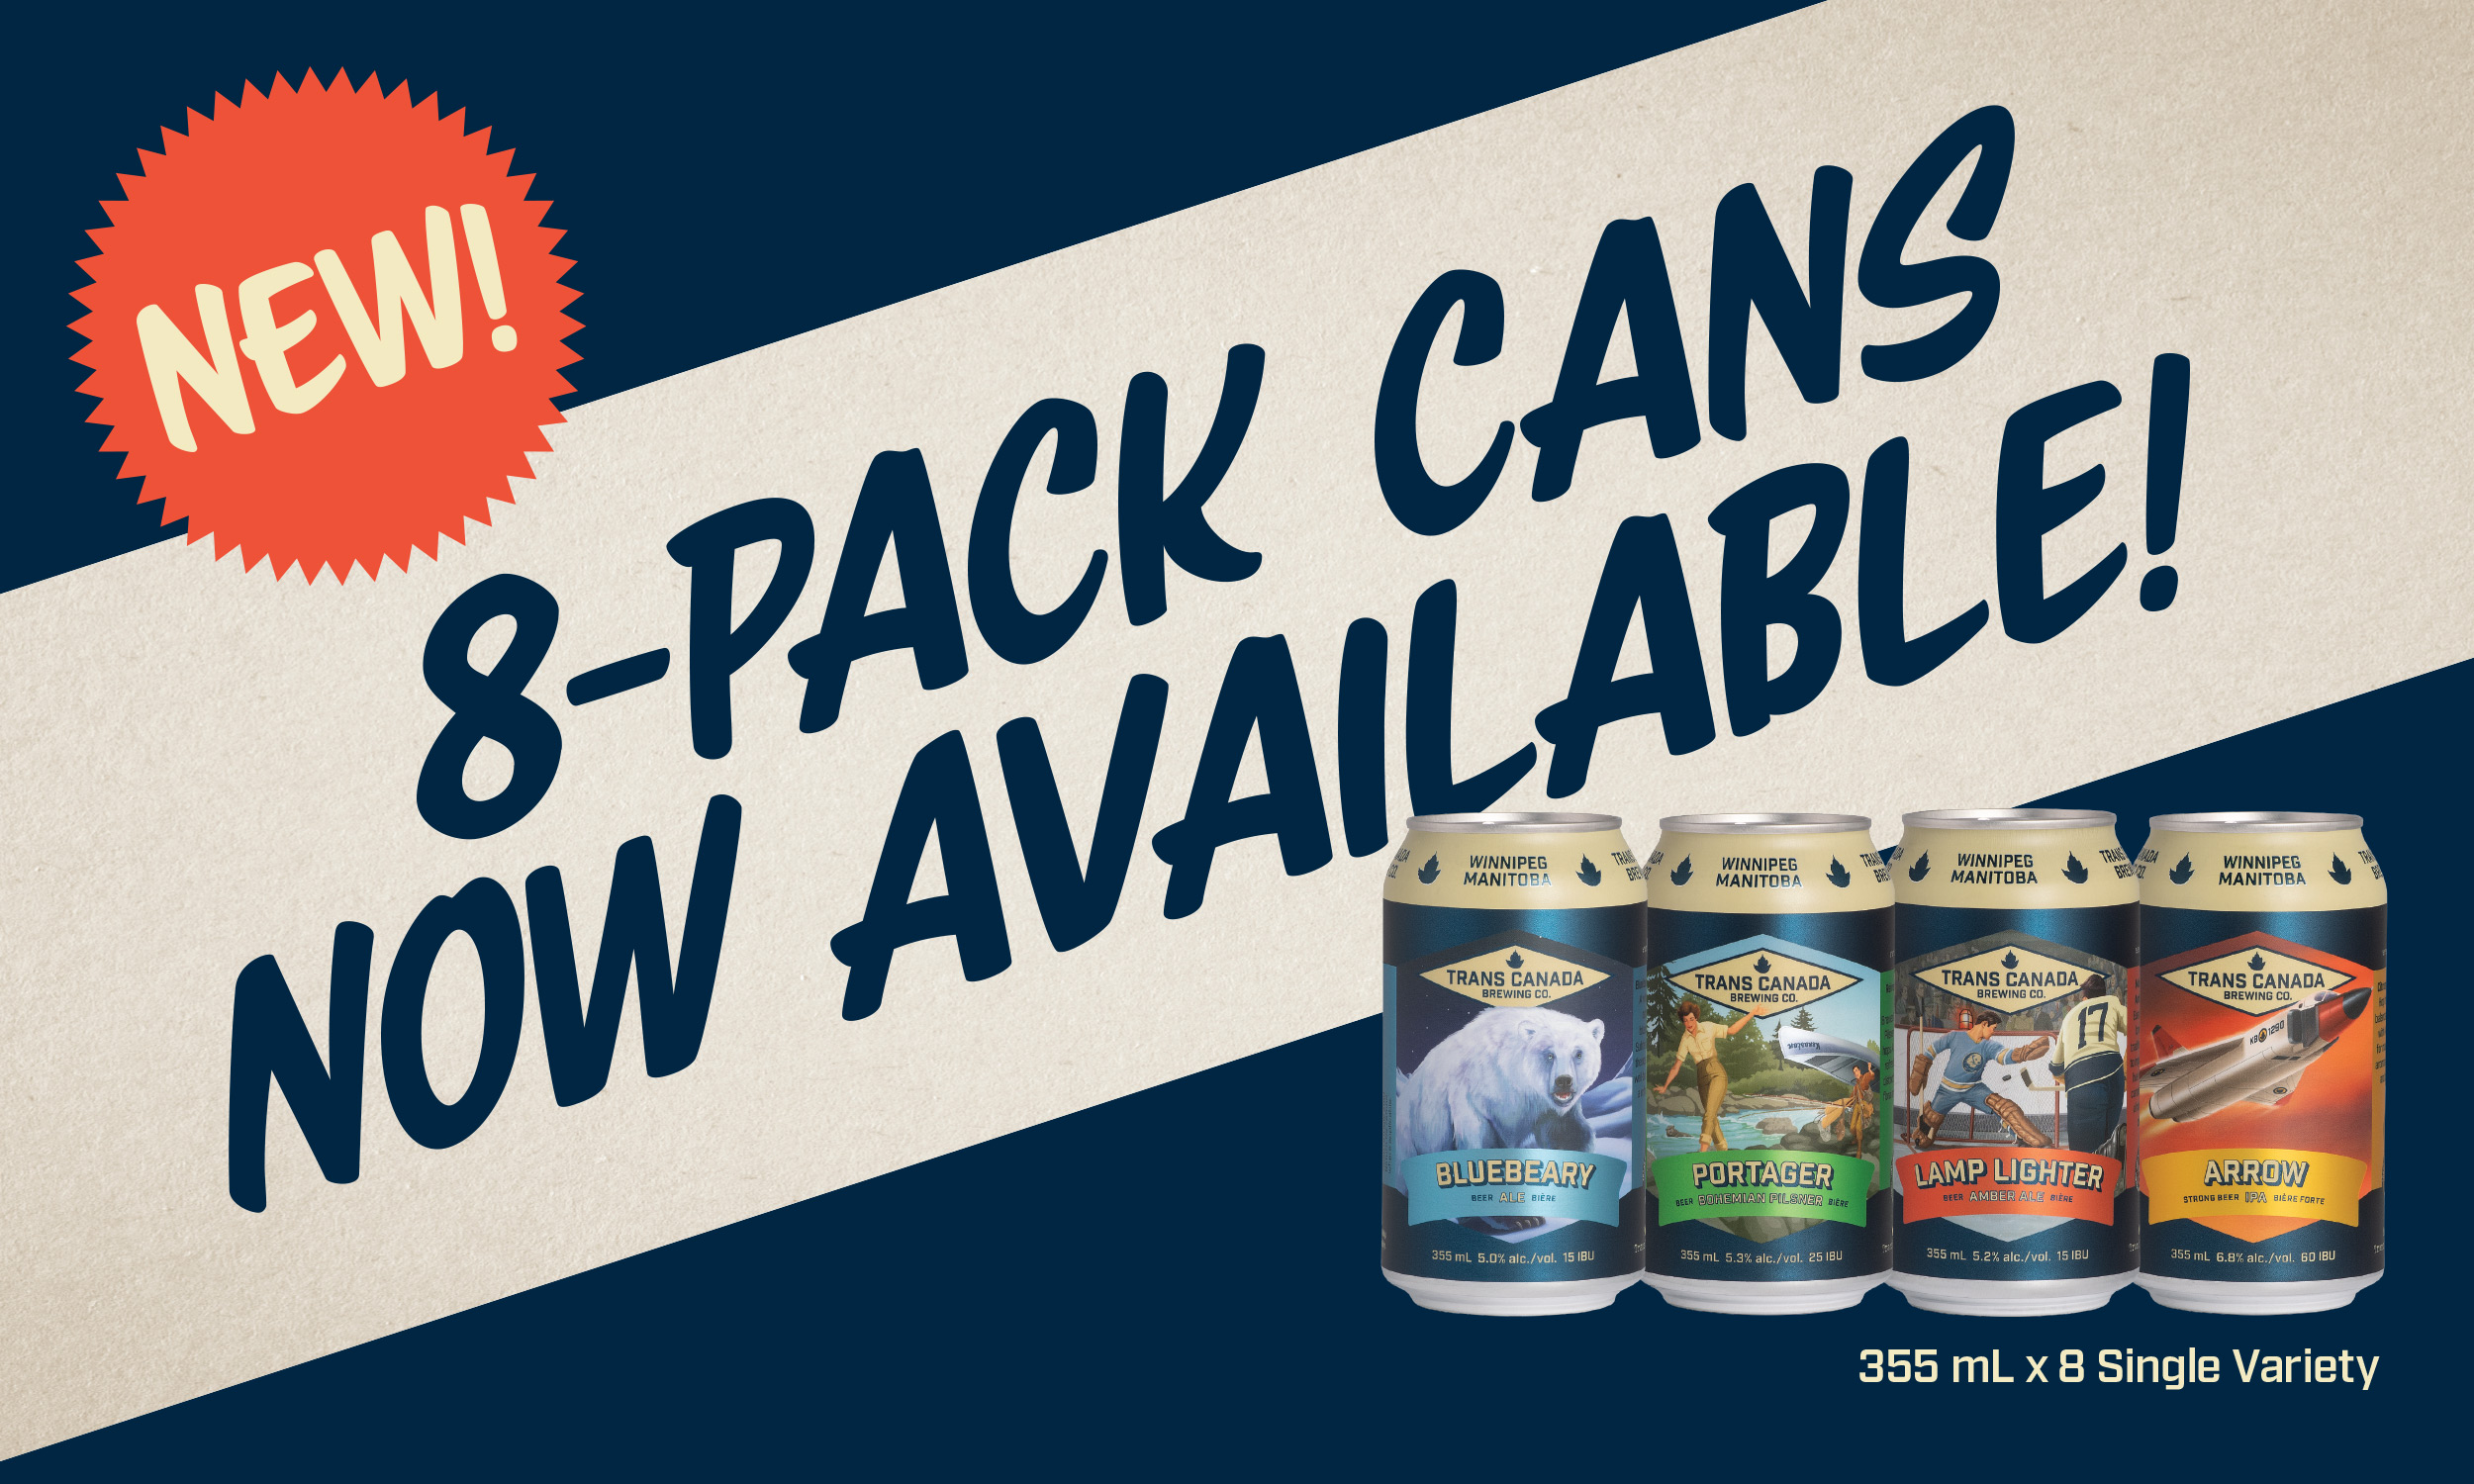 TCB-Main-8-Pack-Cans-Now-Available.jpg